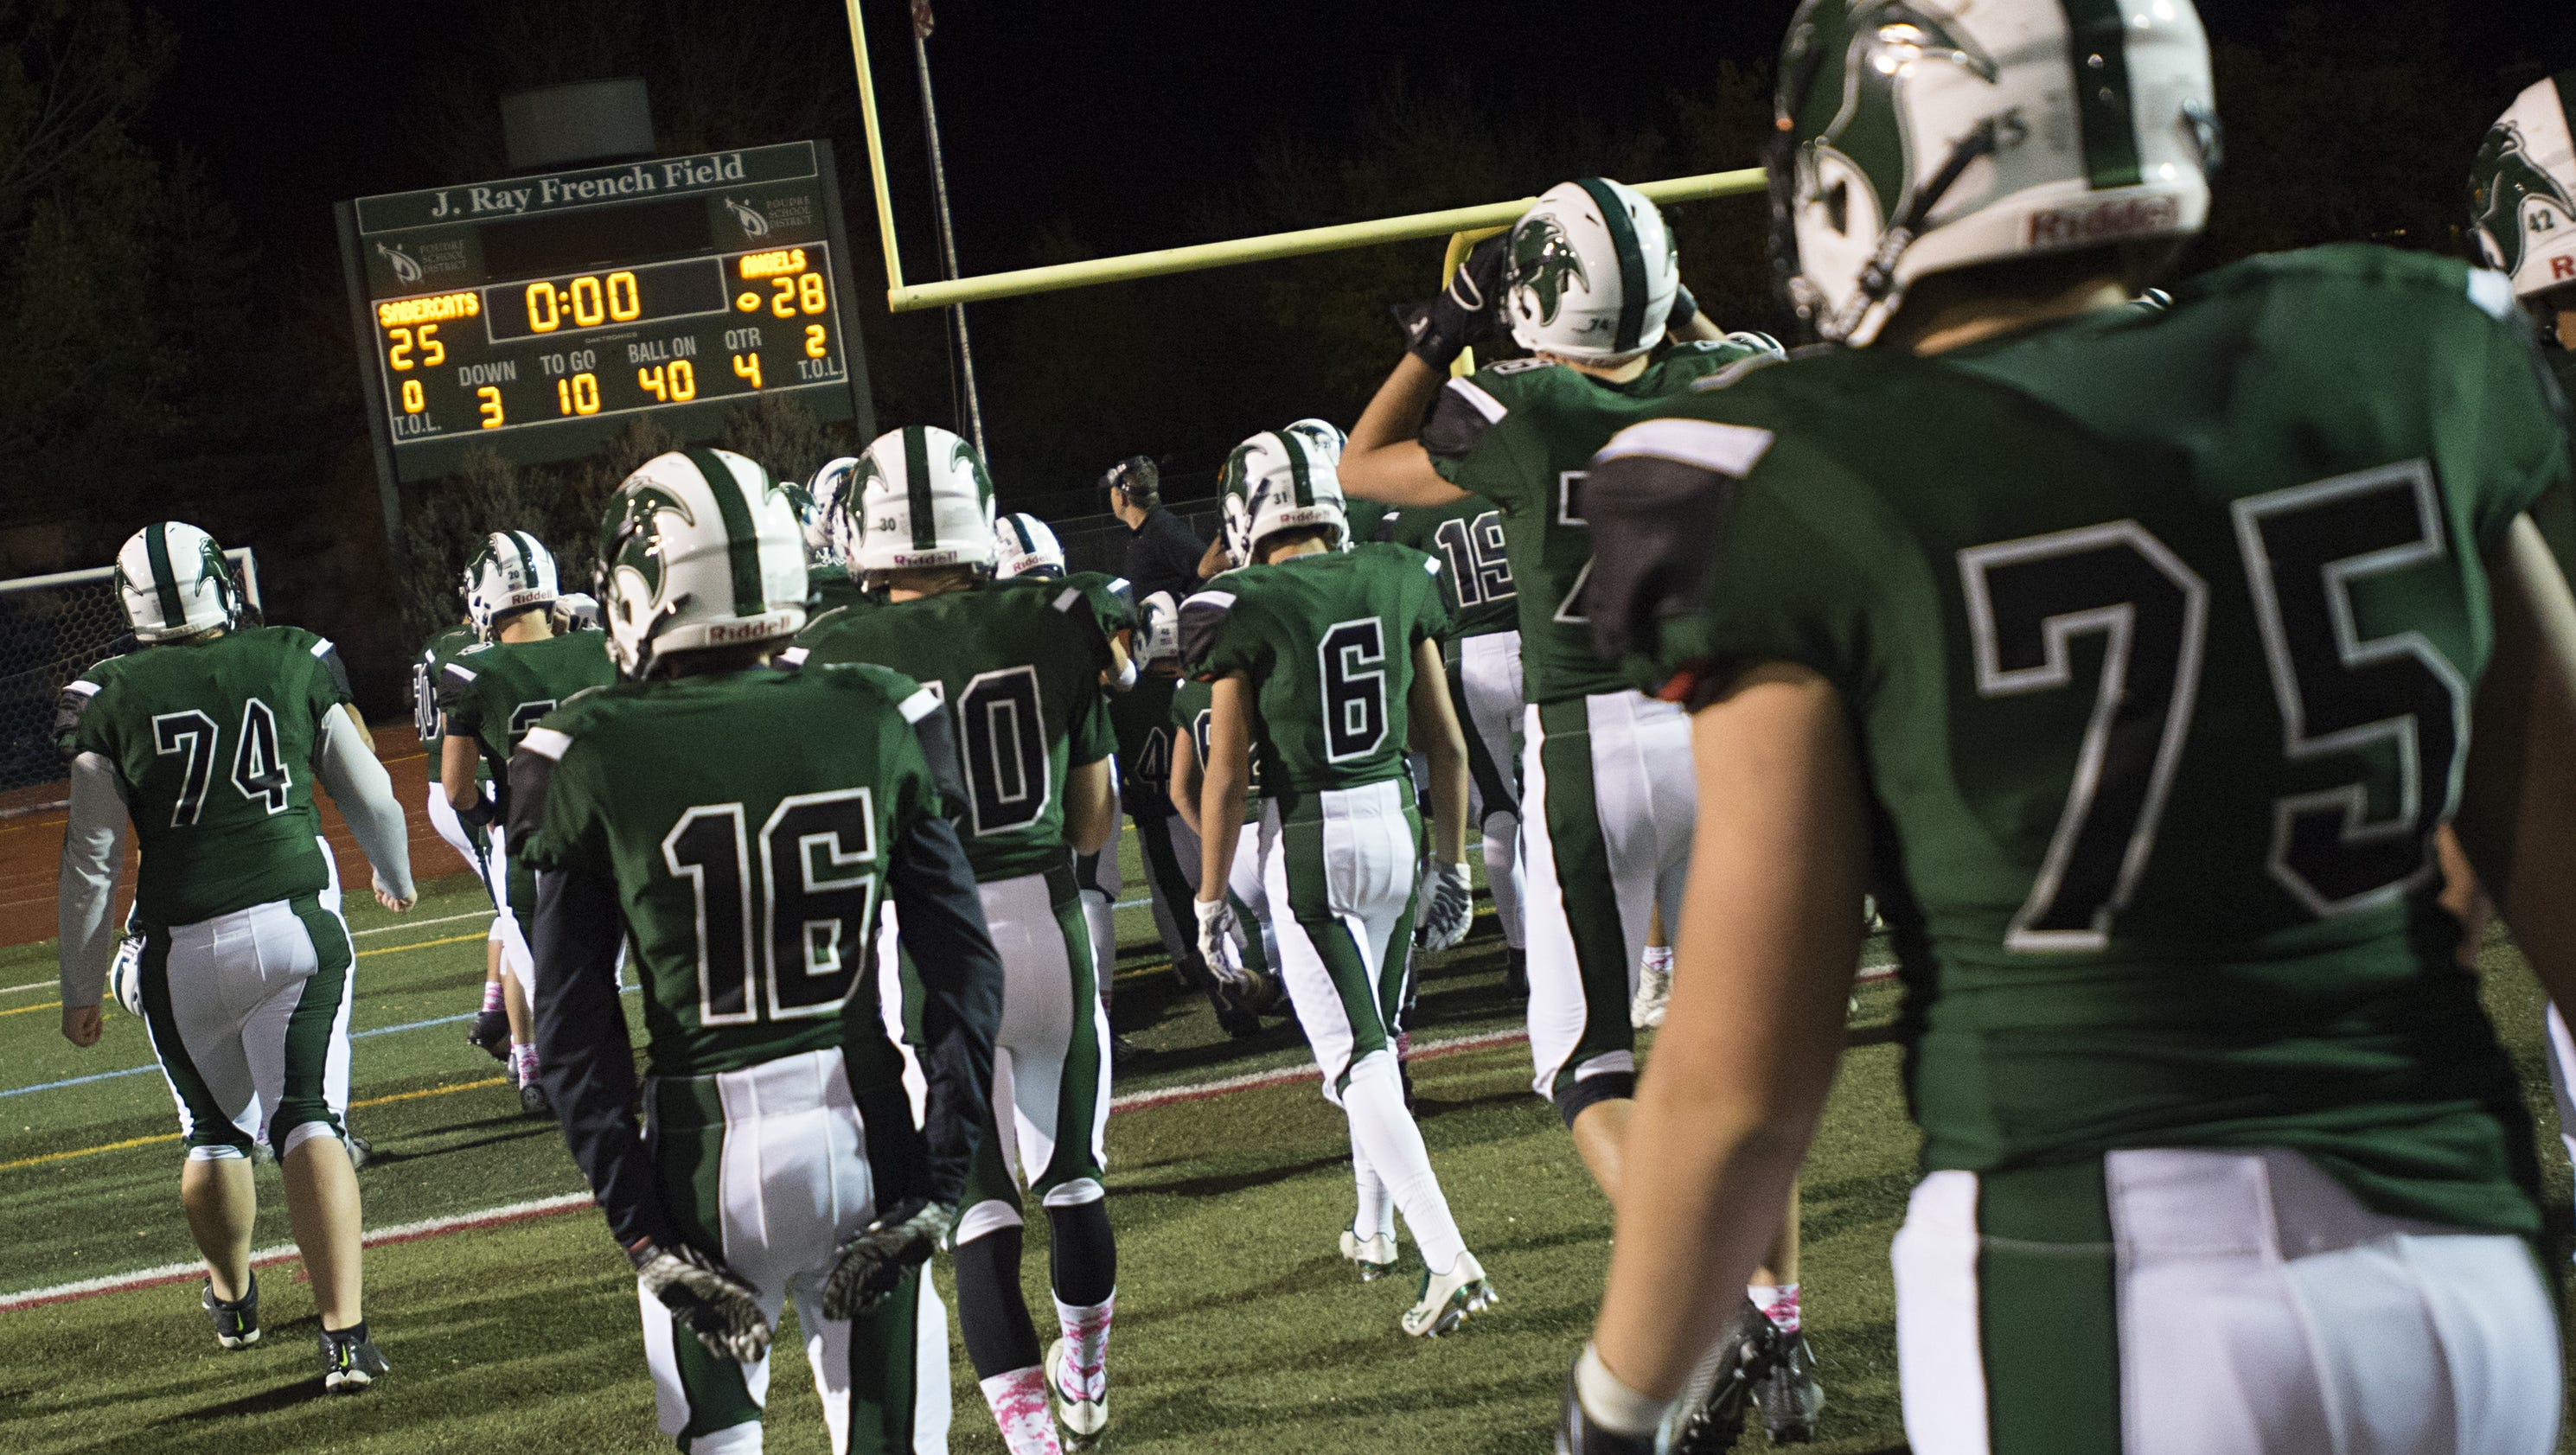 changes to rpi loom after high school football playoff conundrum